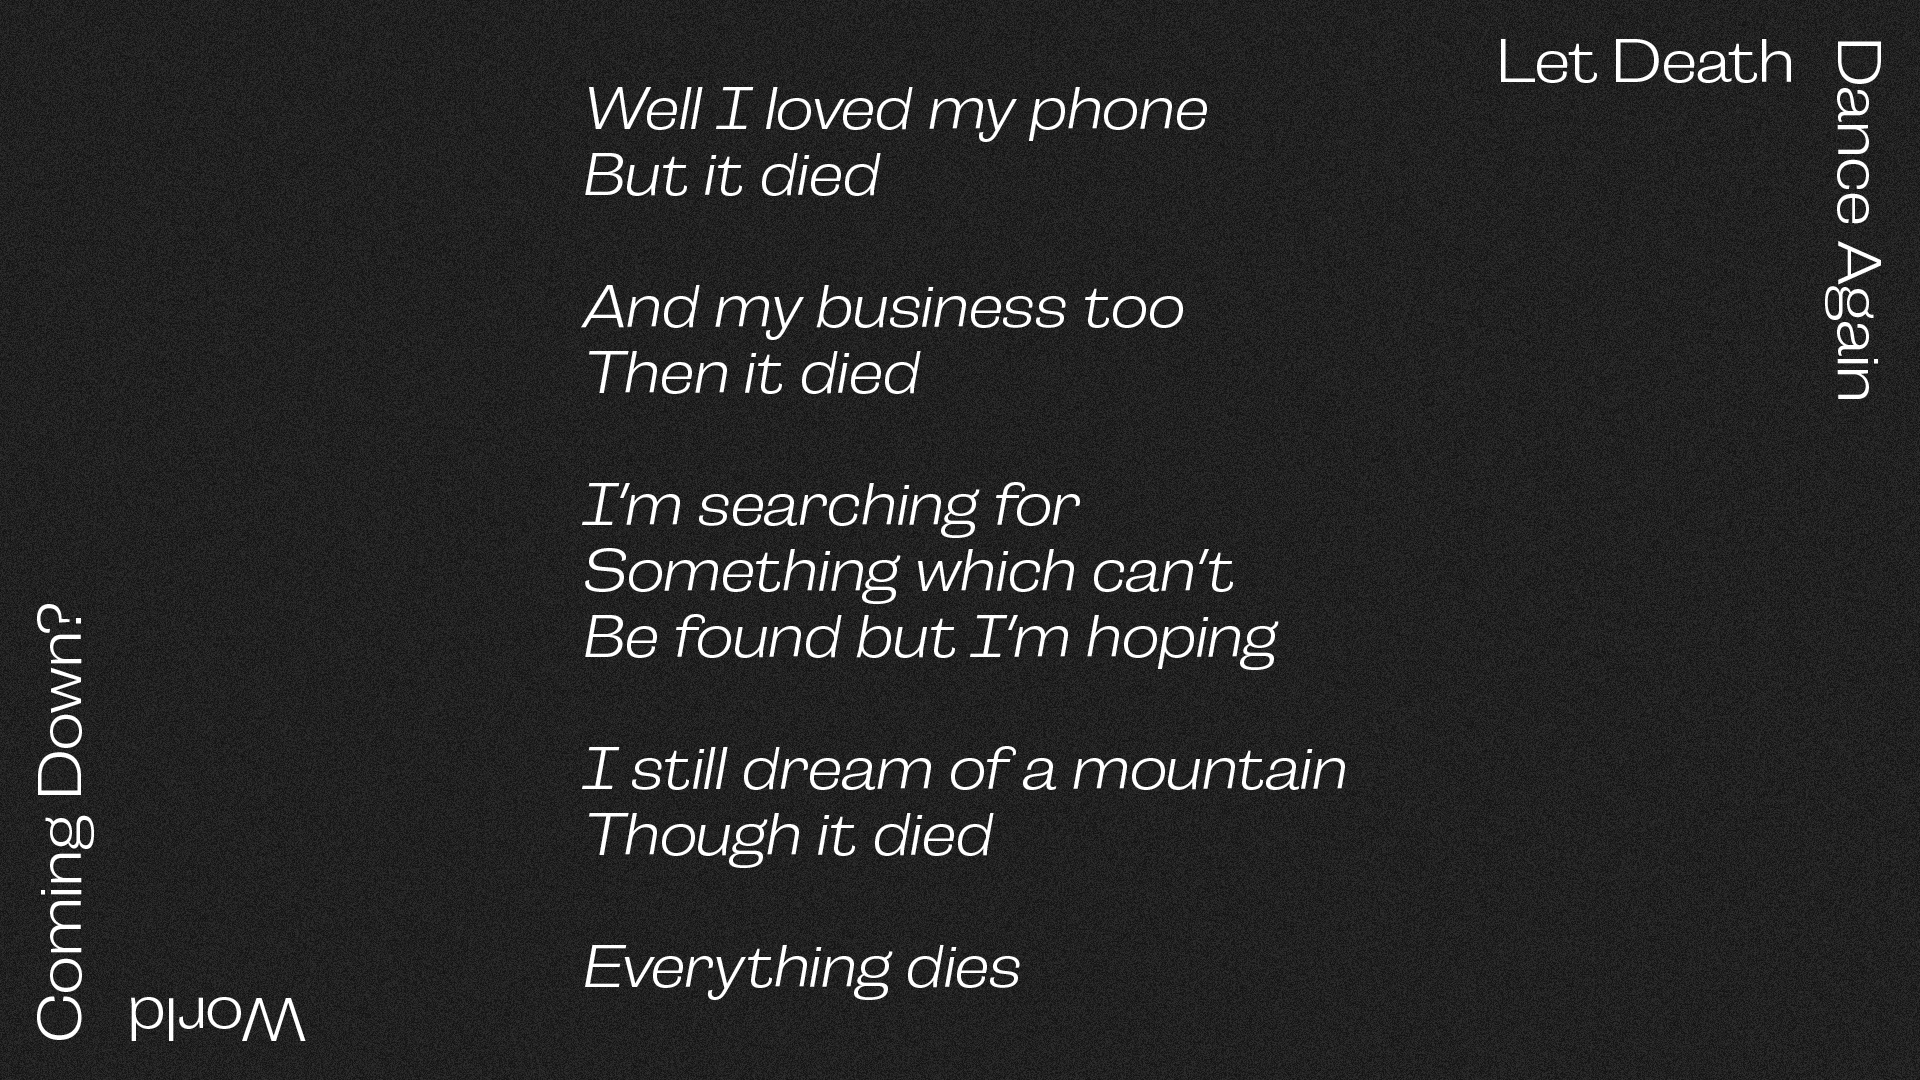 Everything Dies (Though it's Never Been Alive)